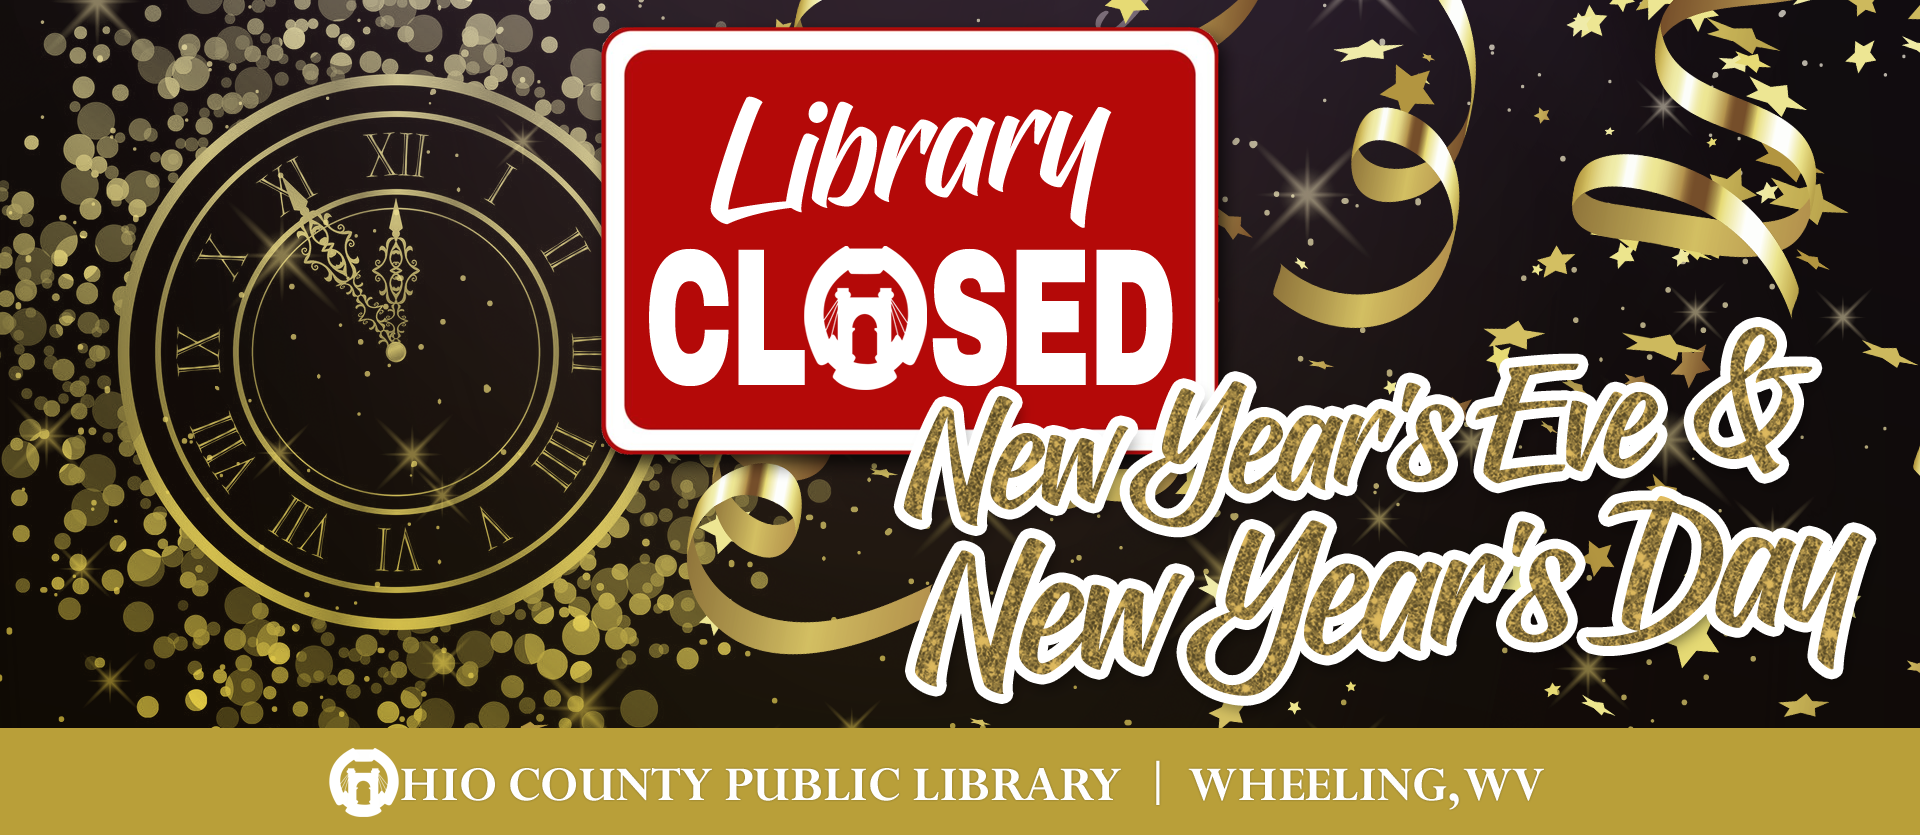 The Library will be closed New Year's Eve and New Year's Day, reopening Thursday, Jan. 2, 2020.